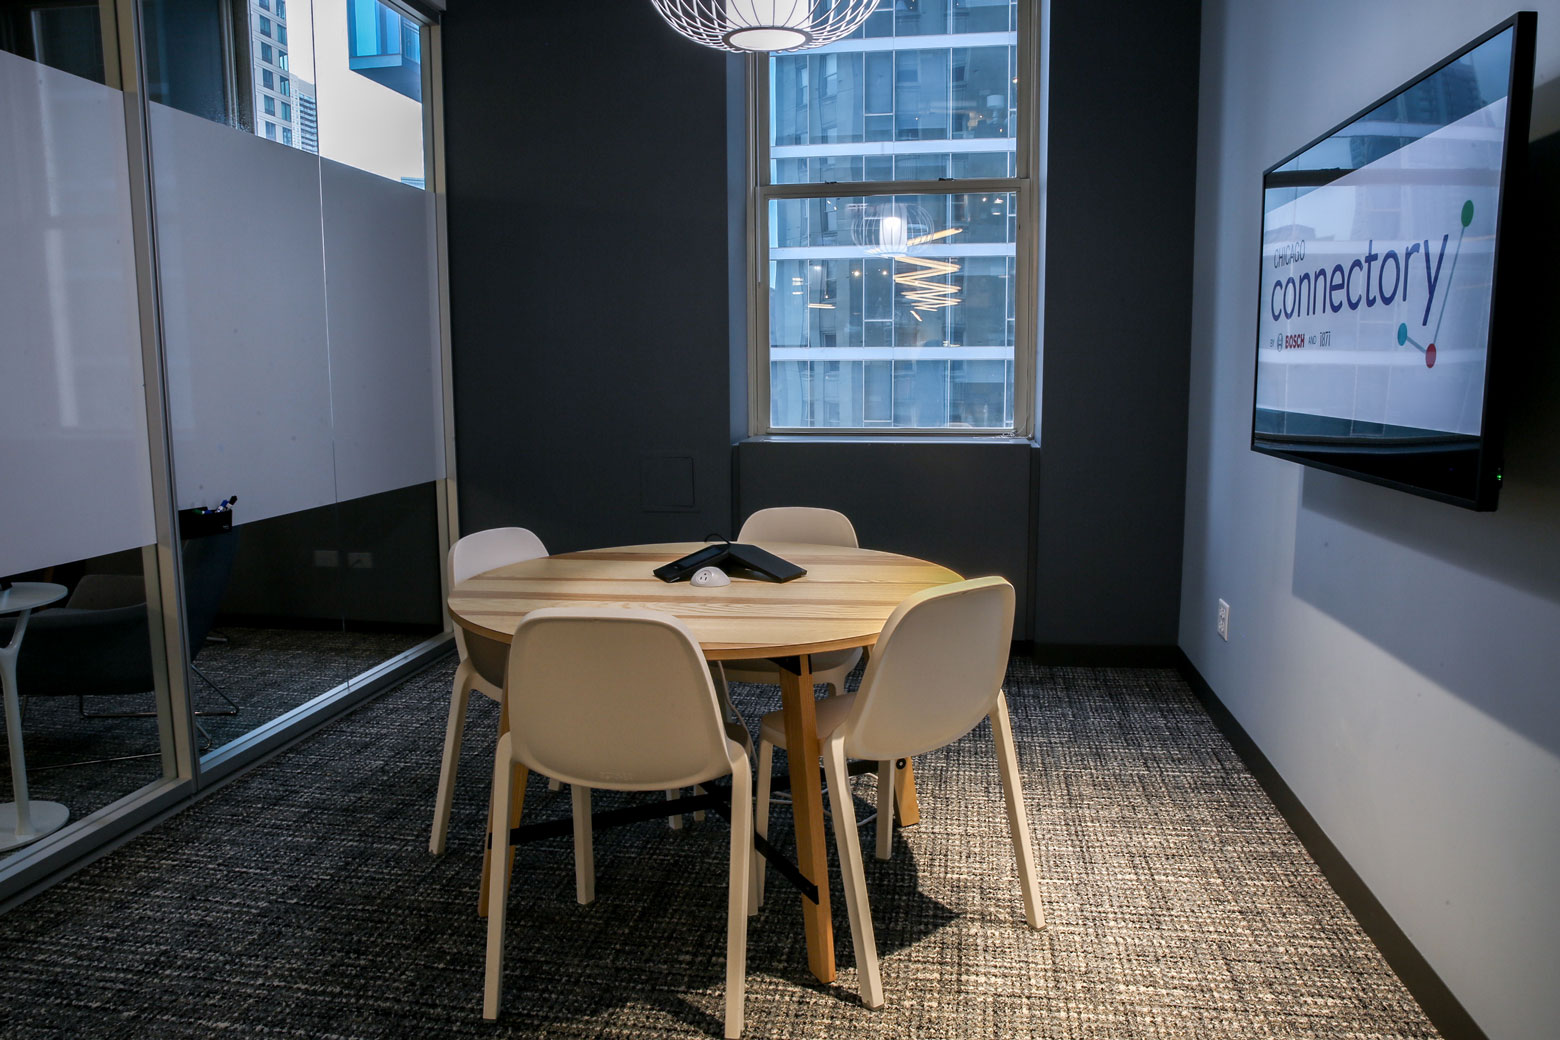 Private Round Table Conference Room in Coworking Office | Chicago Connectory